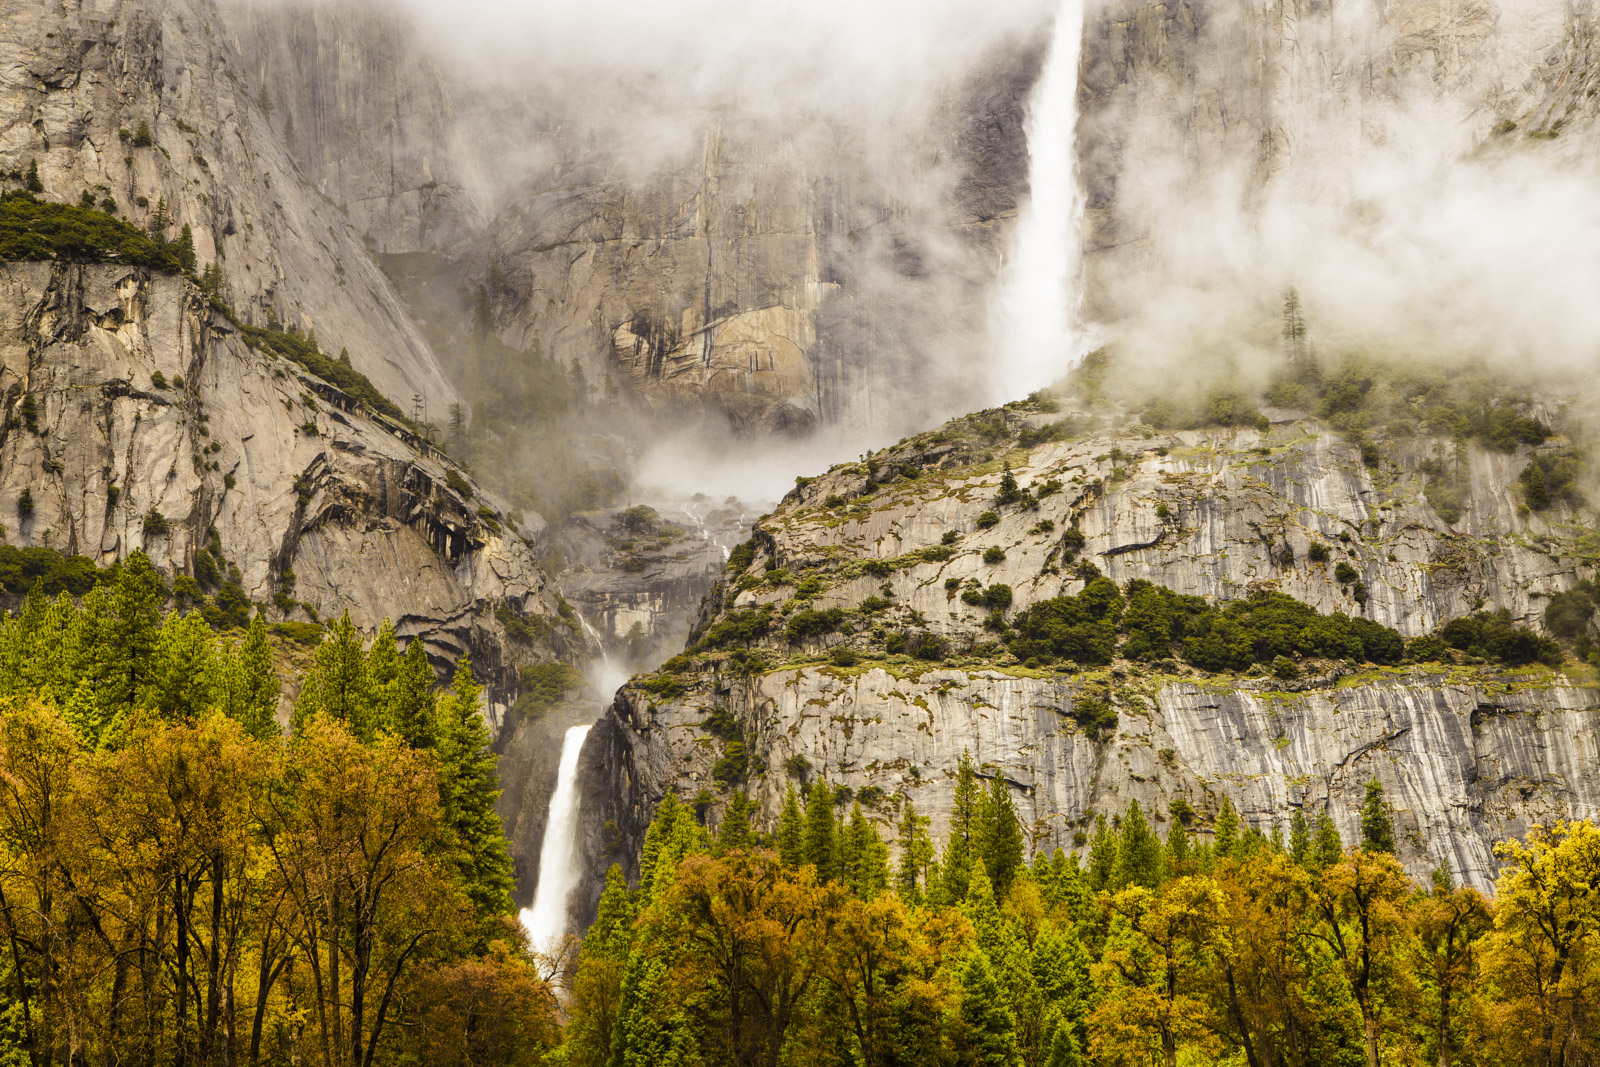 California, North America, Peaceful, Serene, Sierra Nevada, Tranquil, USA, Waterfalls, Yosemite Falls, Yosemite National Park, Yosemite Valley, colorful, description, feelings, misty, moody, seasons, , photo